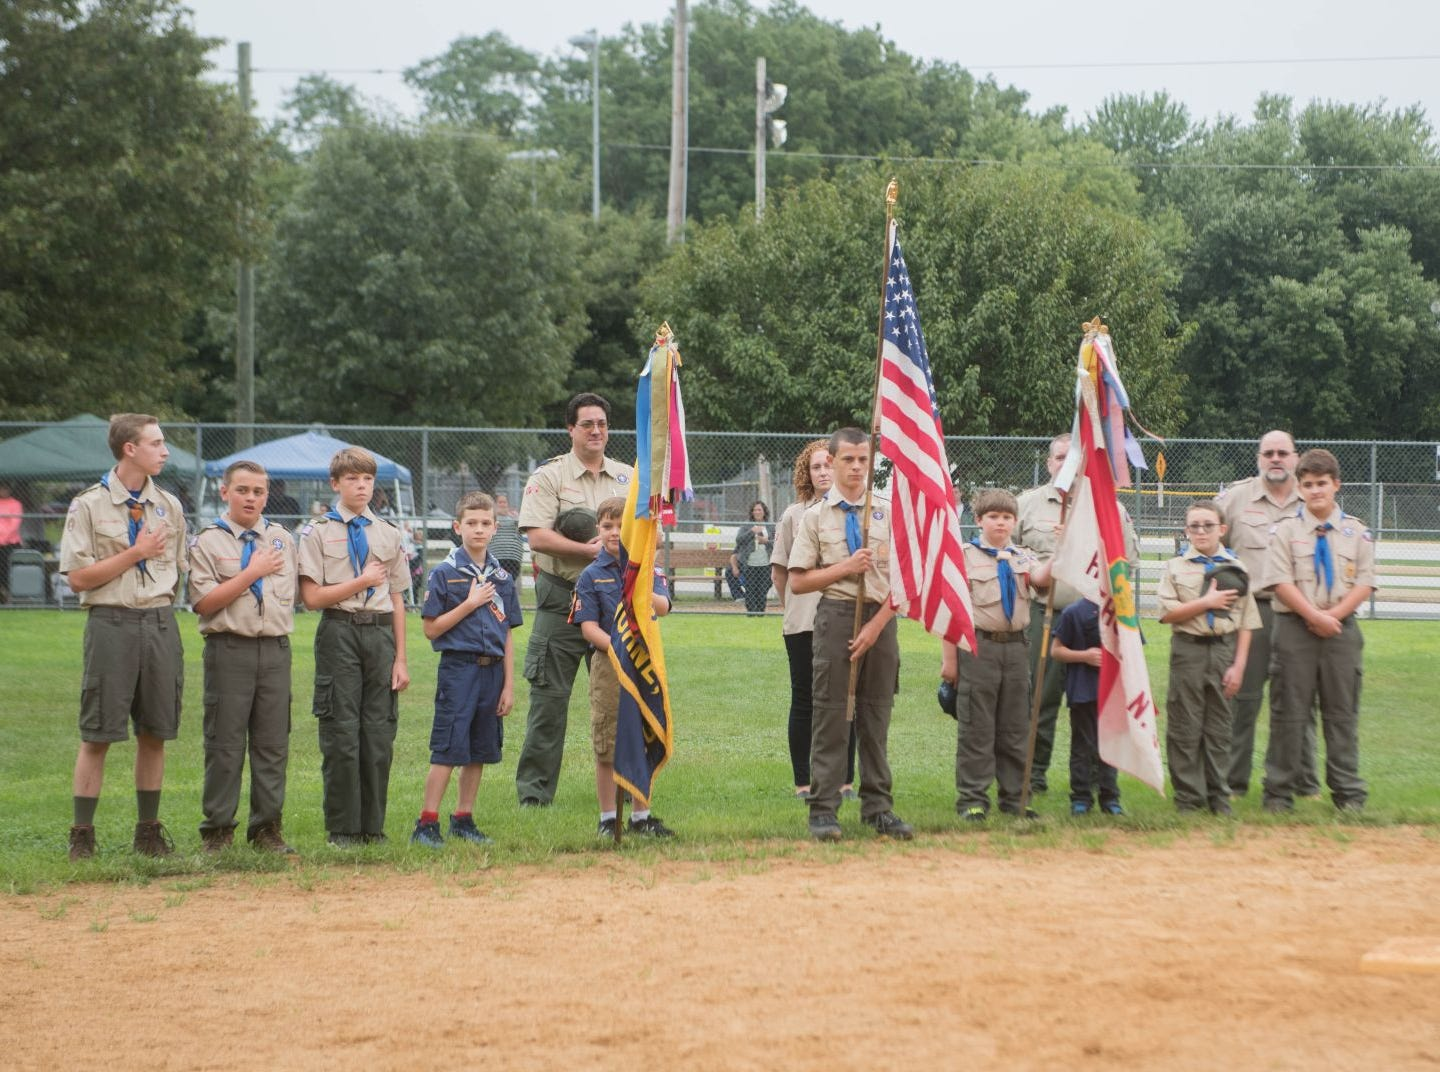 The Boy Scouts do the presentation of the colors. Mark A. Sasso Memorial Fund hosted its 10th annual Softball Fundraiser this past Saturday at Wagaraw Baseball Field in Hawthorne. Don La Greca was joined by many of his fellow ESPN personalities and celebrity guests to play against the winning ALRC team from the round robin tournament that took place throughout the day. 09/08/2018